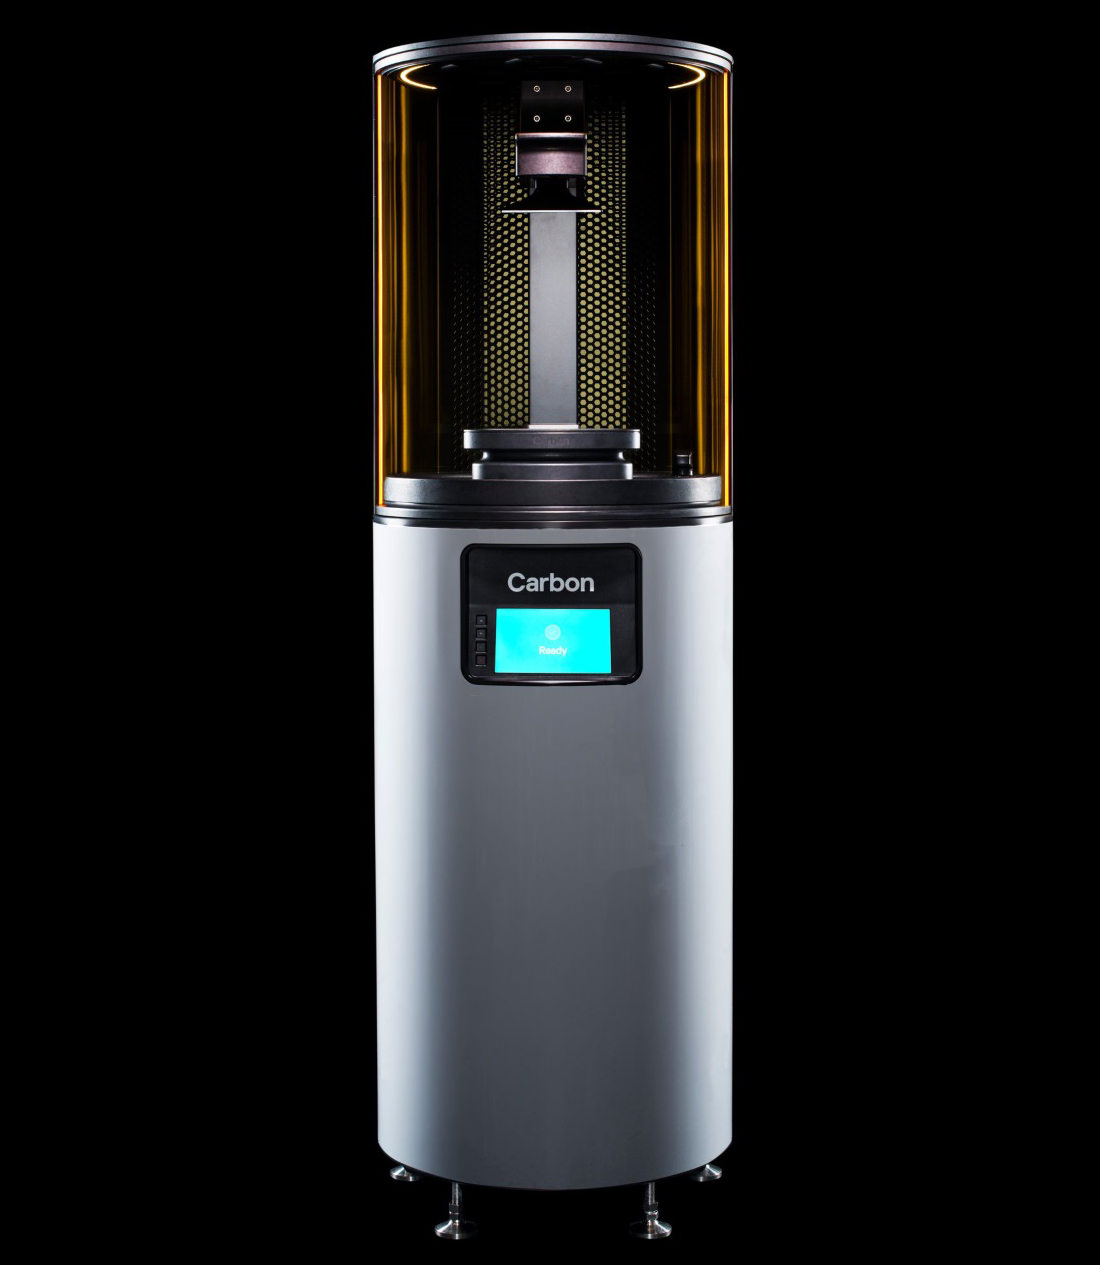 carbon-3dprinter-m1-1